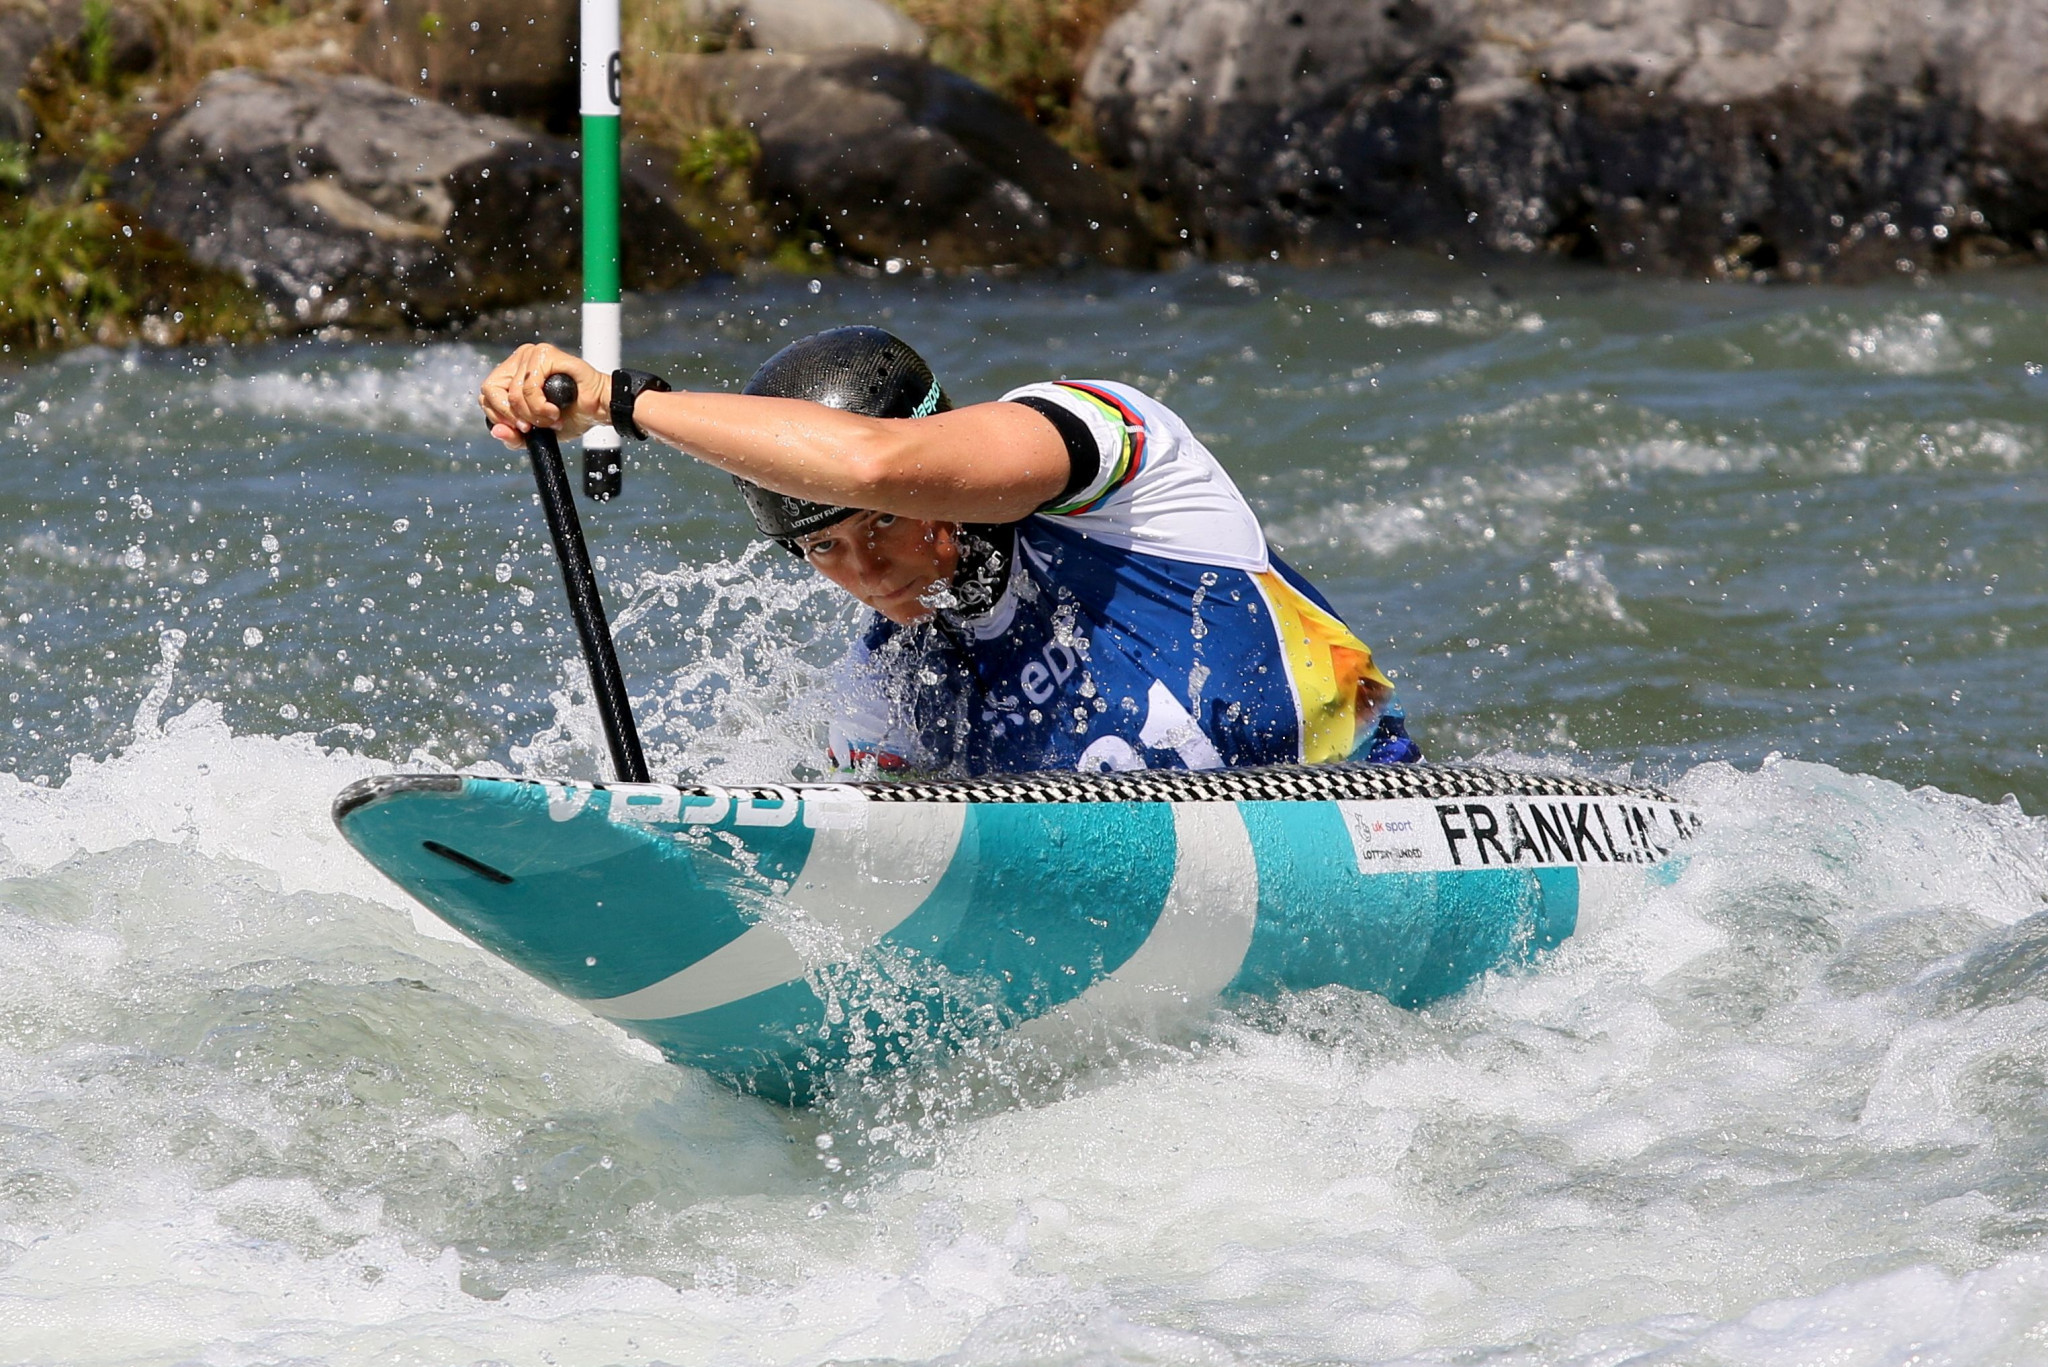 Britain's Mallory Franklin continued her love affair with the Pau course at the European Canoe Association European Canoe Slalom Championships ©ECA